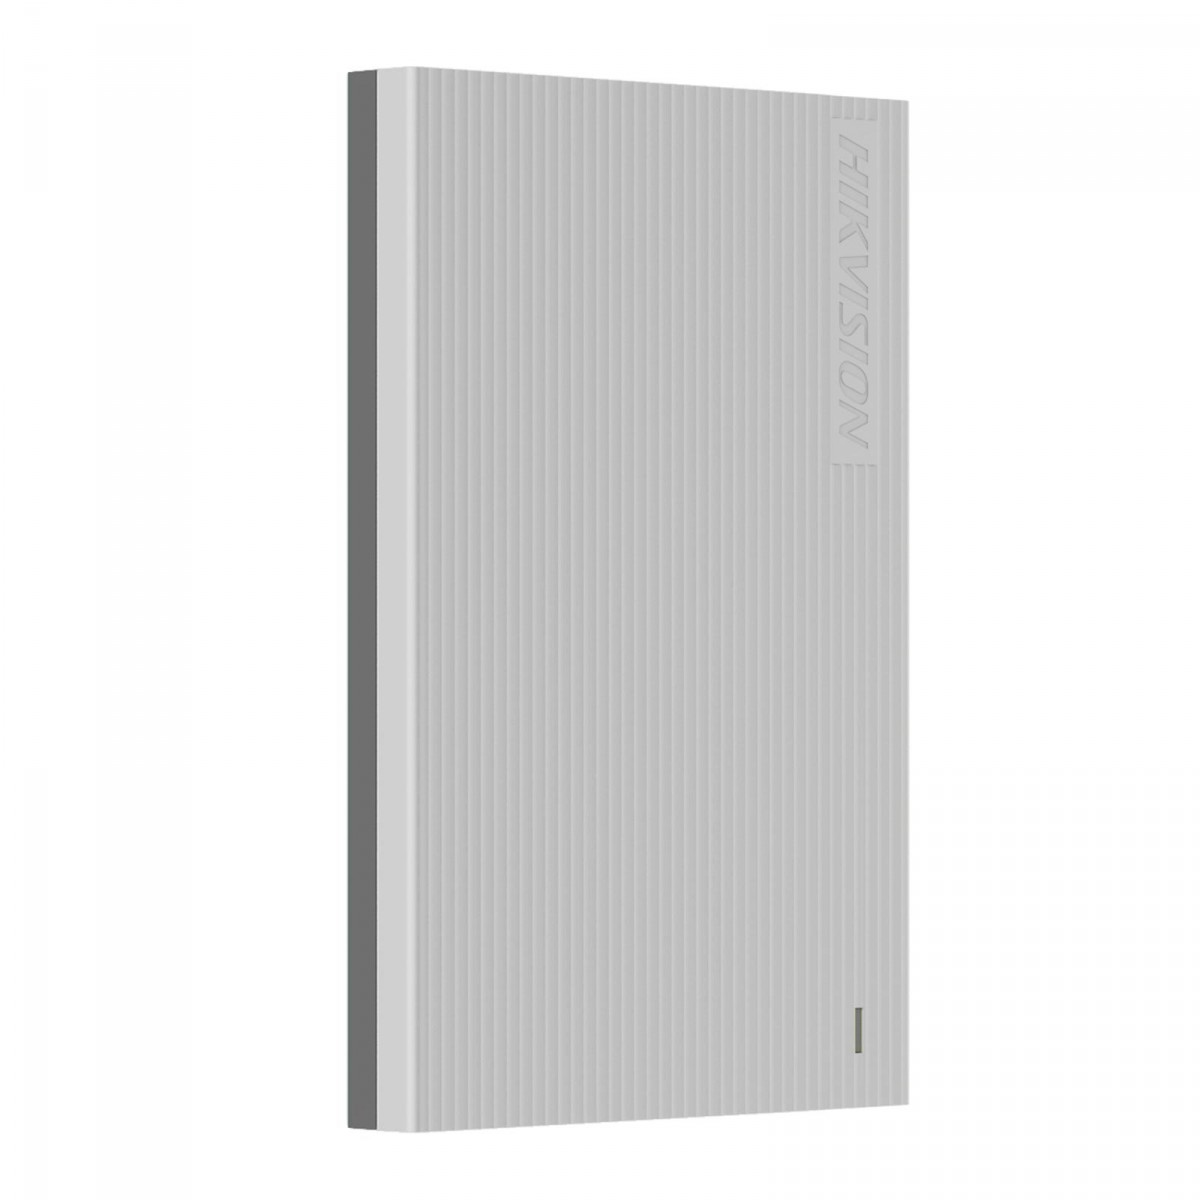 HD Externo Hikvision T30, 2TB, USB 3.0, Gray, HS-EHDD-T30-2T-GRAY